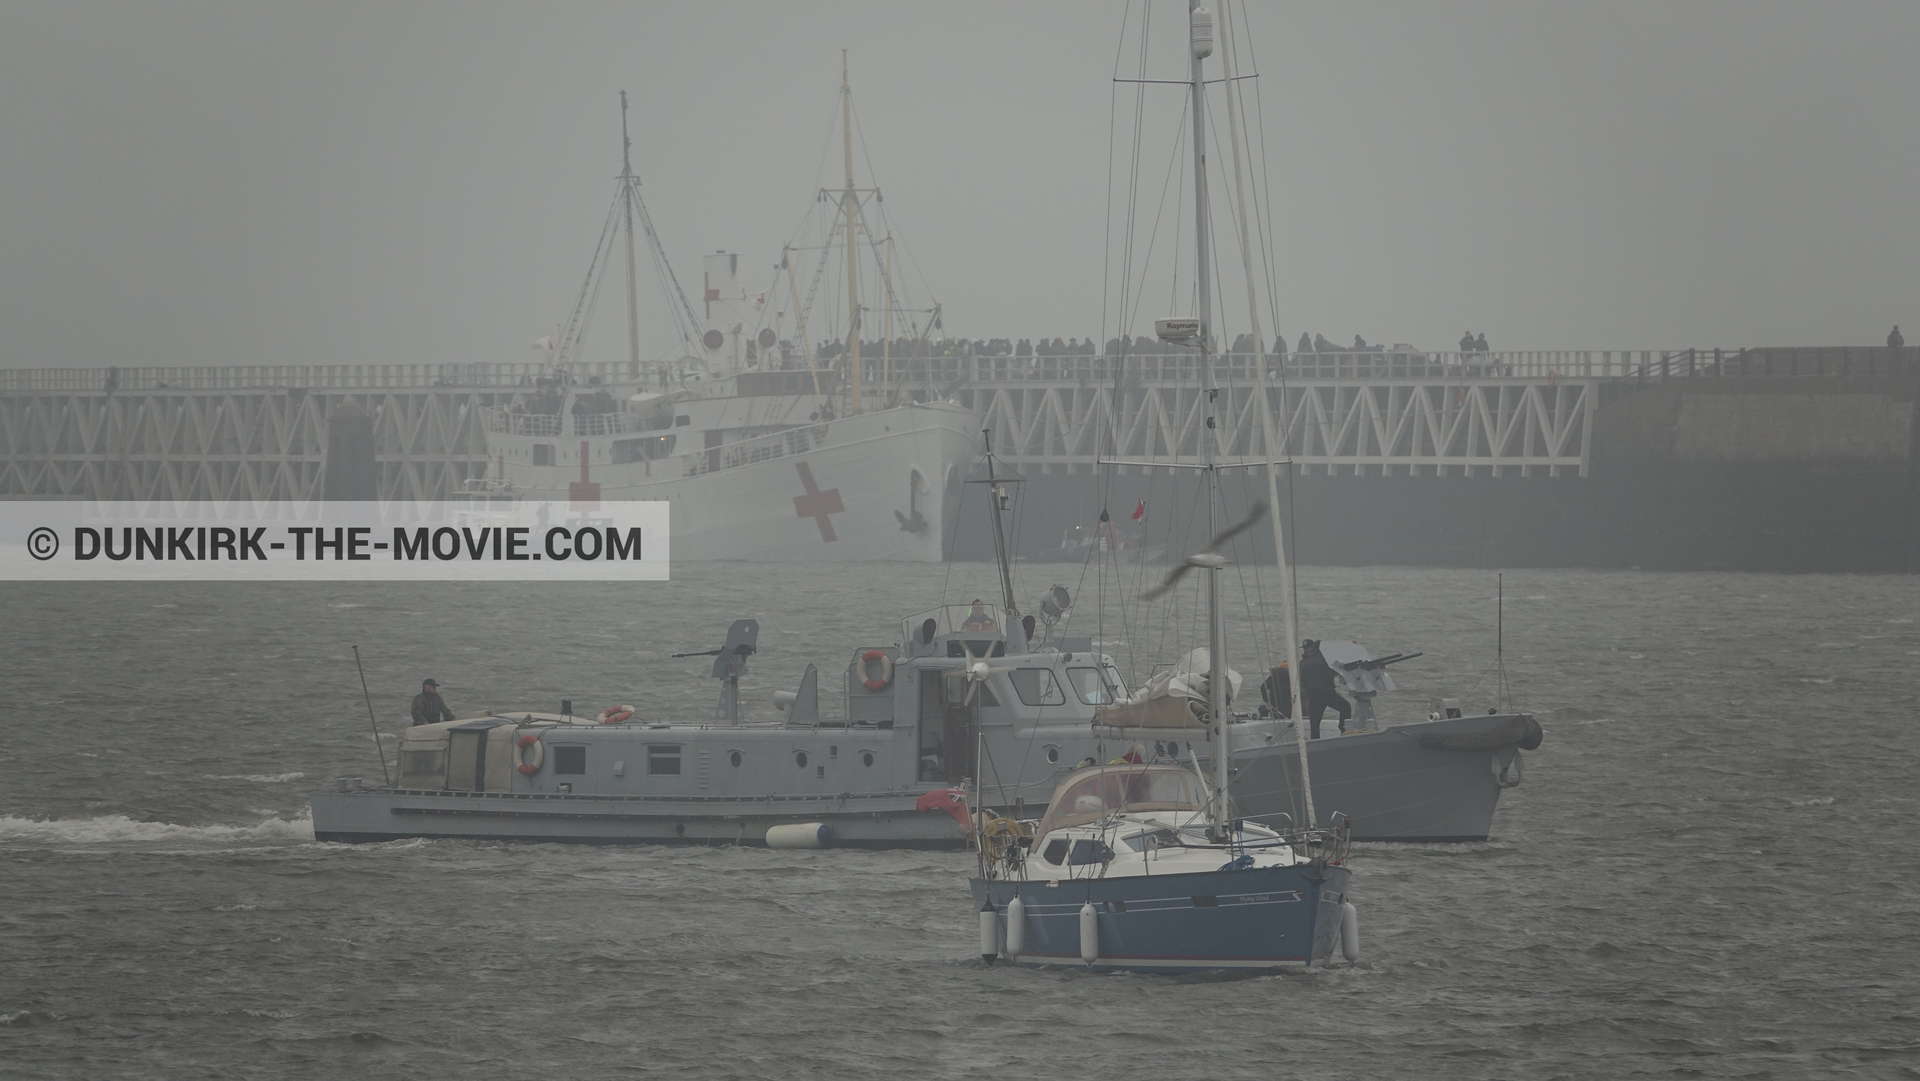 Picture with boat, grey sky, EST pier, PR 22,  from behind the scene of the Dunkirk movie by Nolan